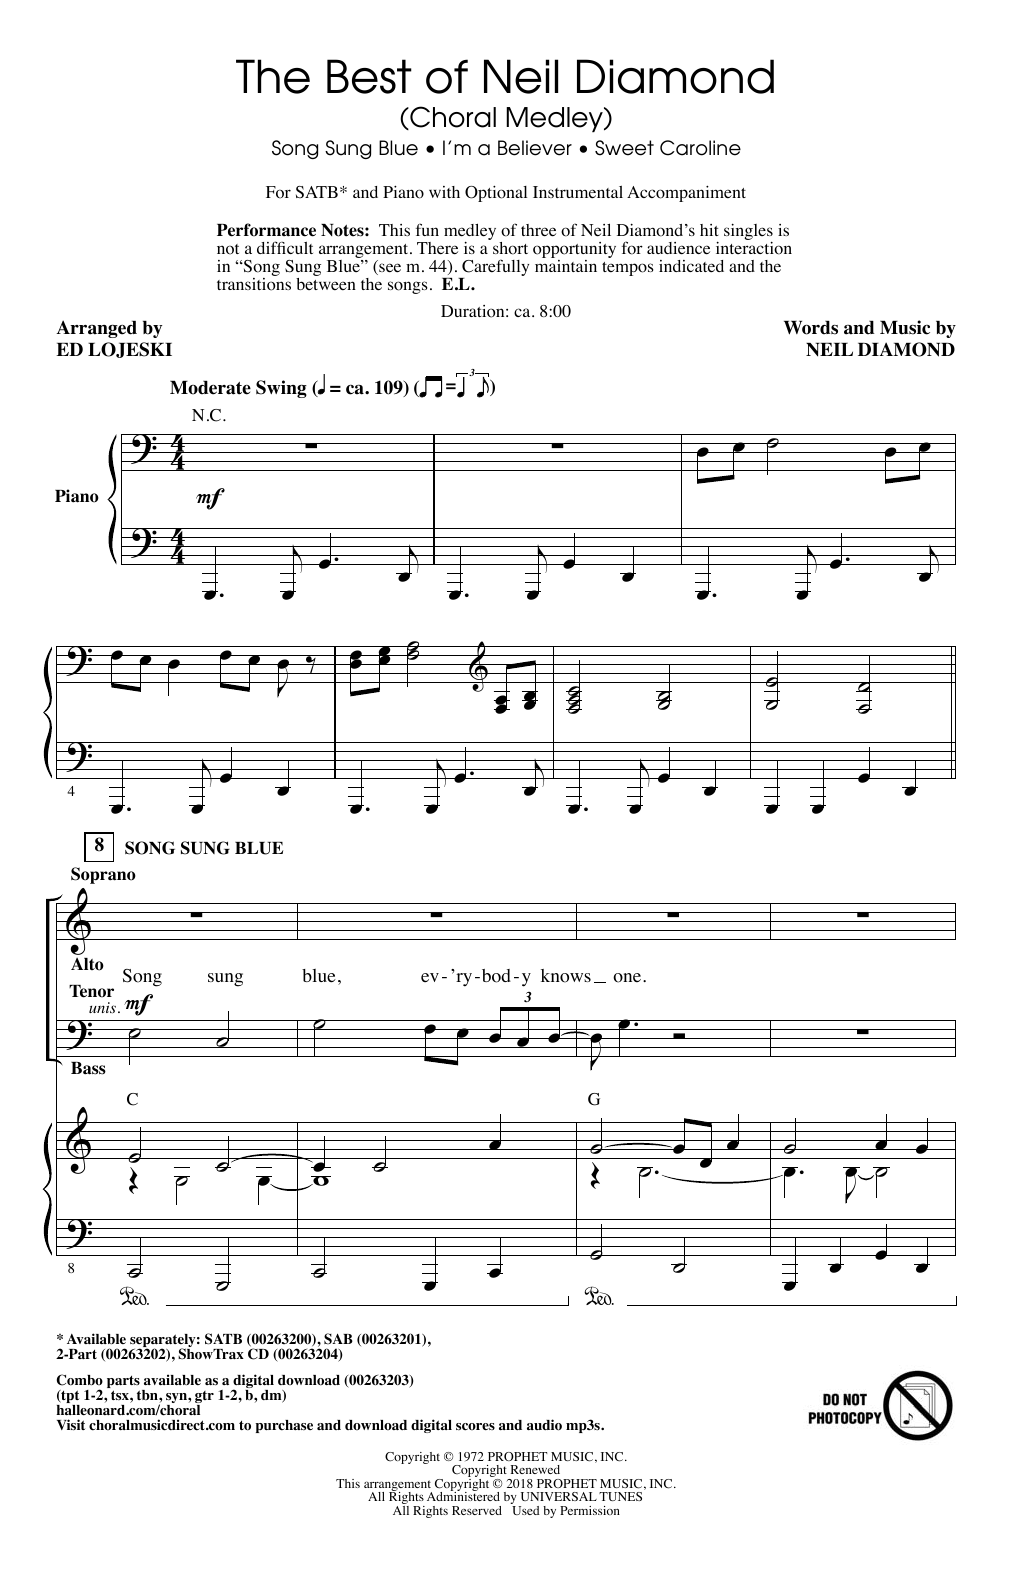 Ed Lojeski The Best Of Neil Diamond Choral Medley Sheet Music